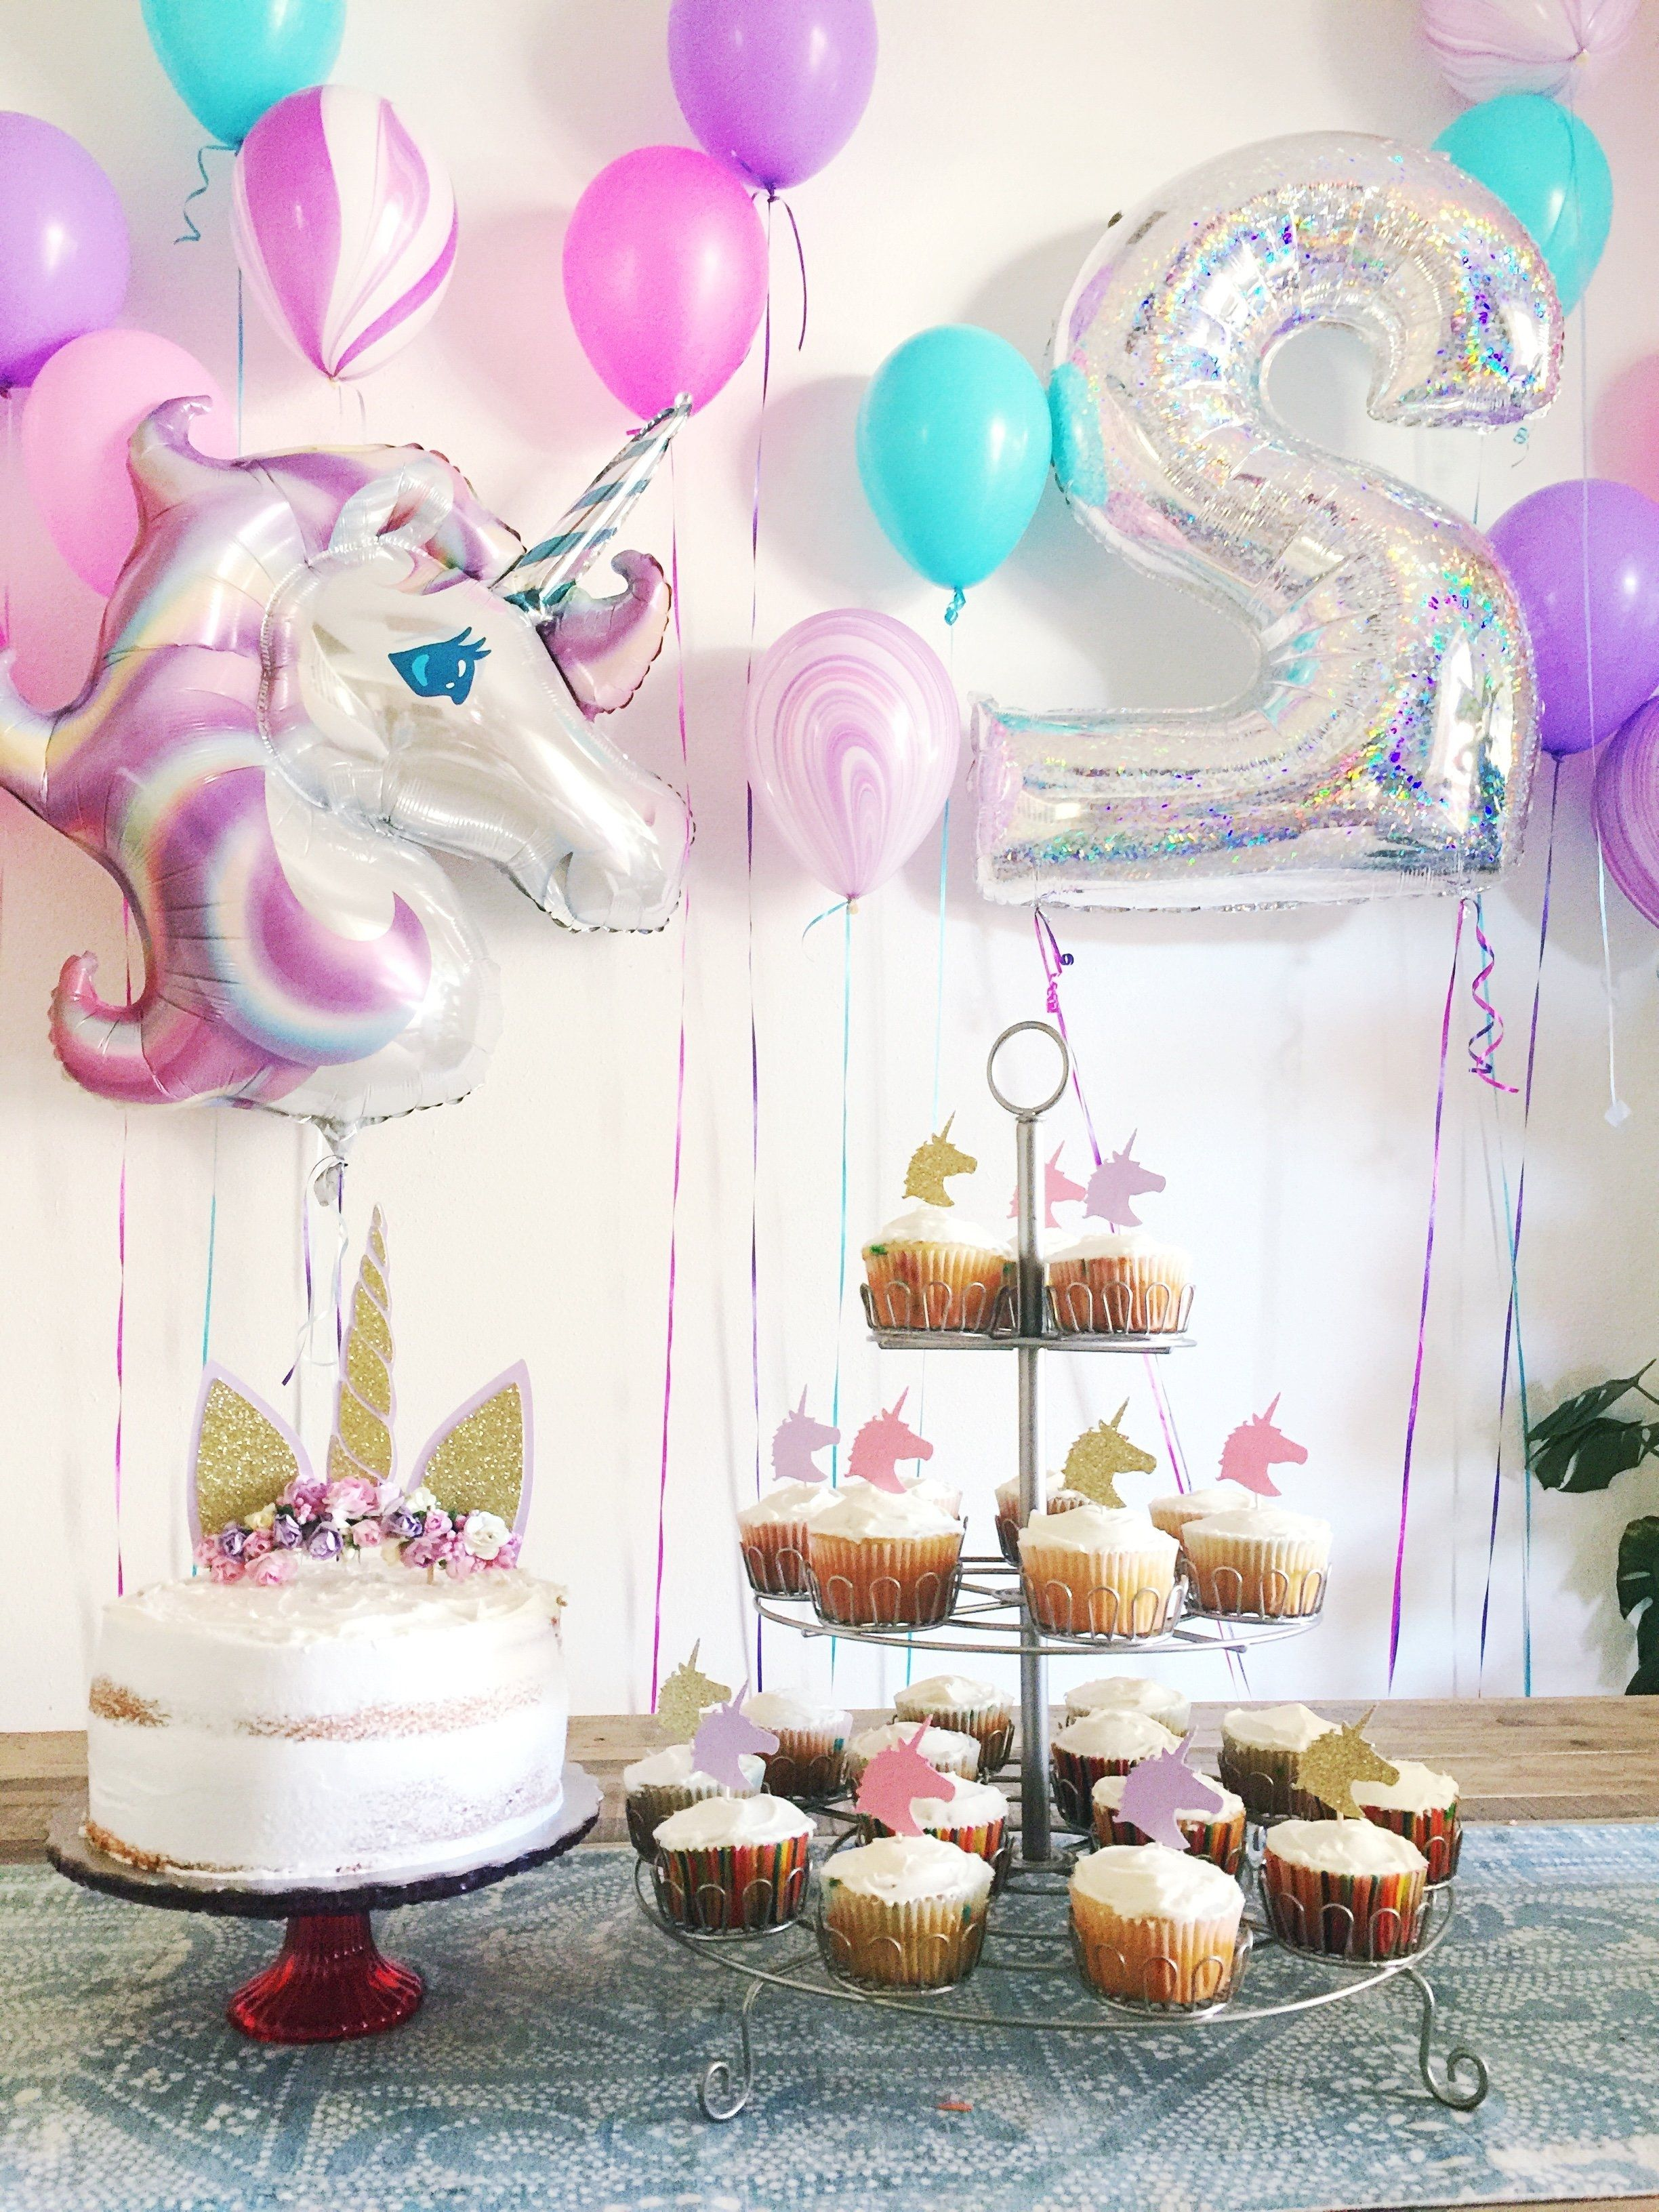 10 Year Old Girl Birthday Party Ideas 2 Year Old Birthday Party Girls Birthday Party Decorations Birthday Party Places